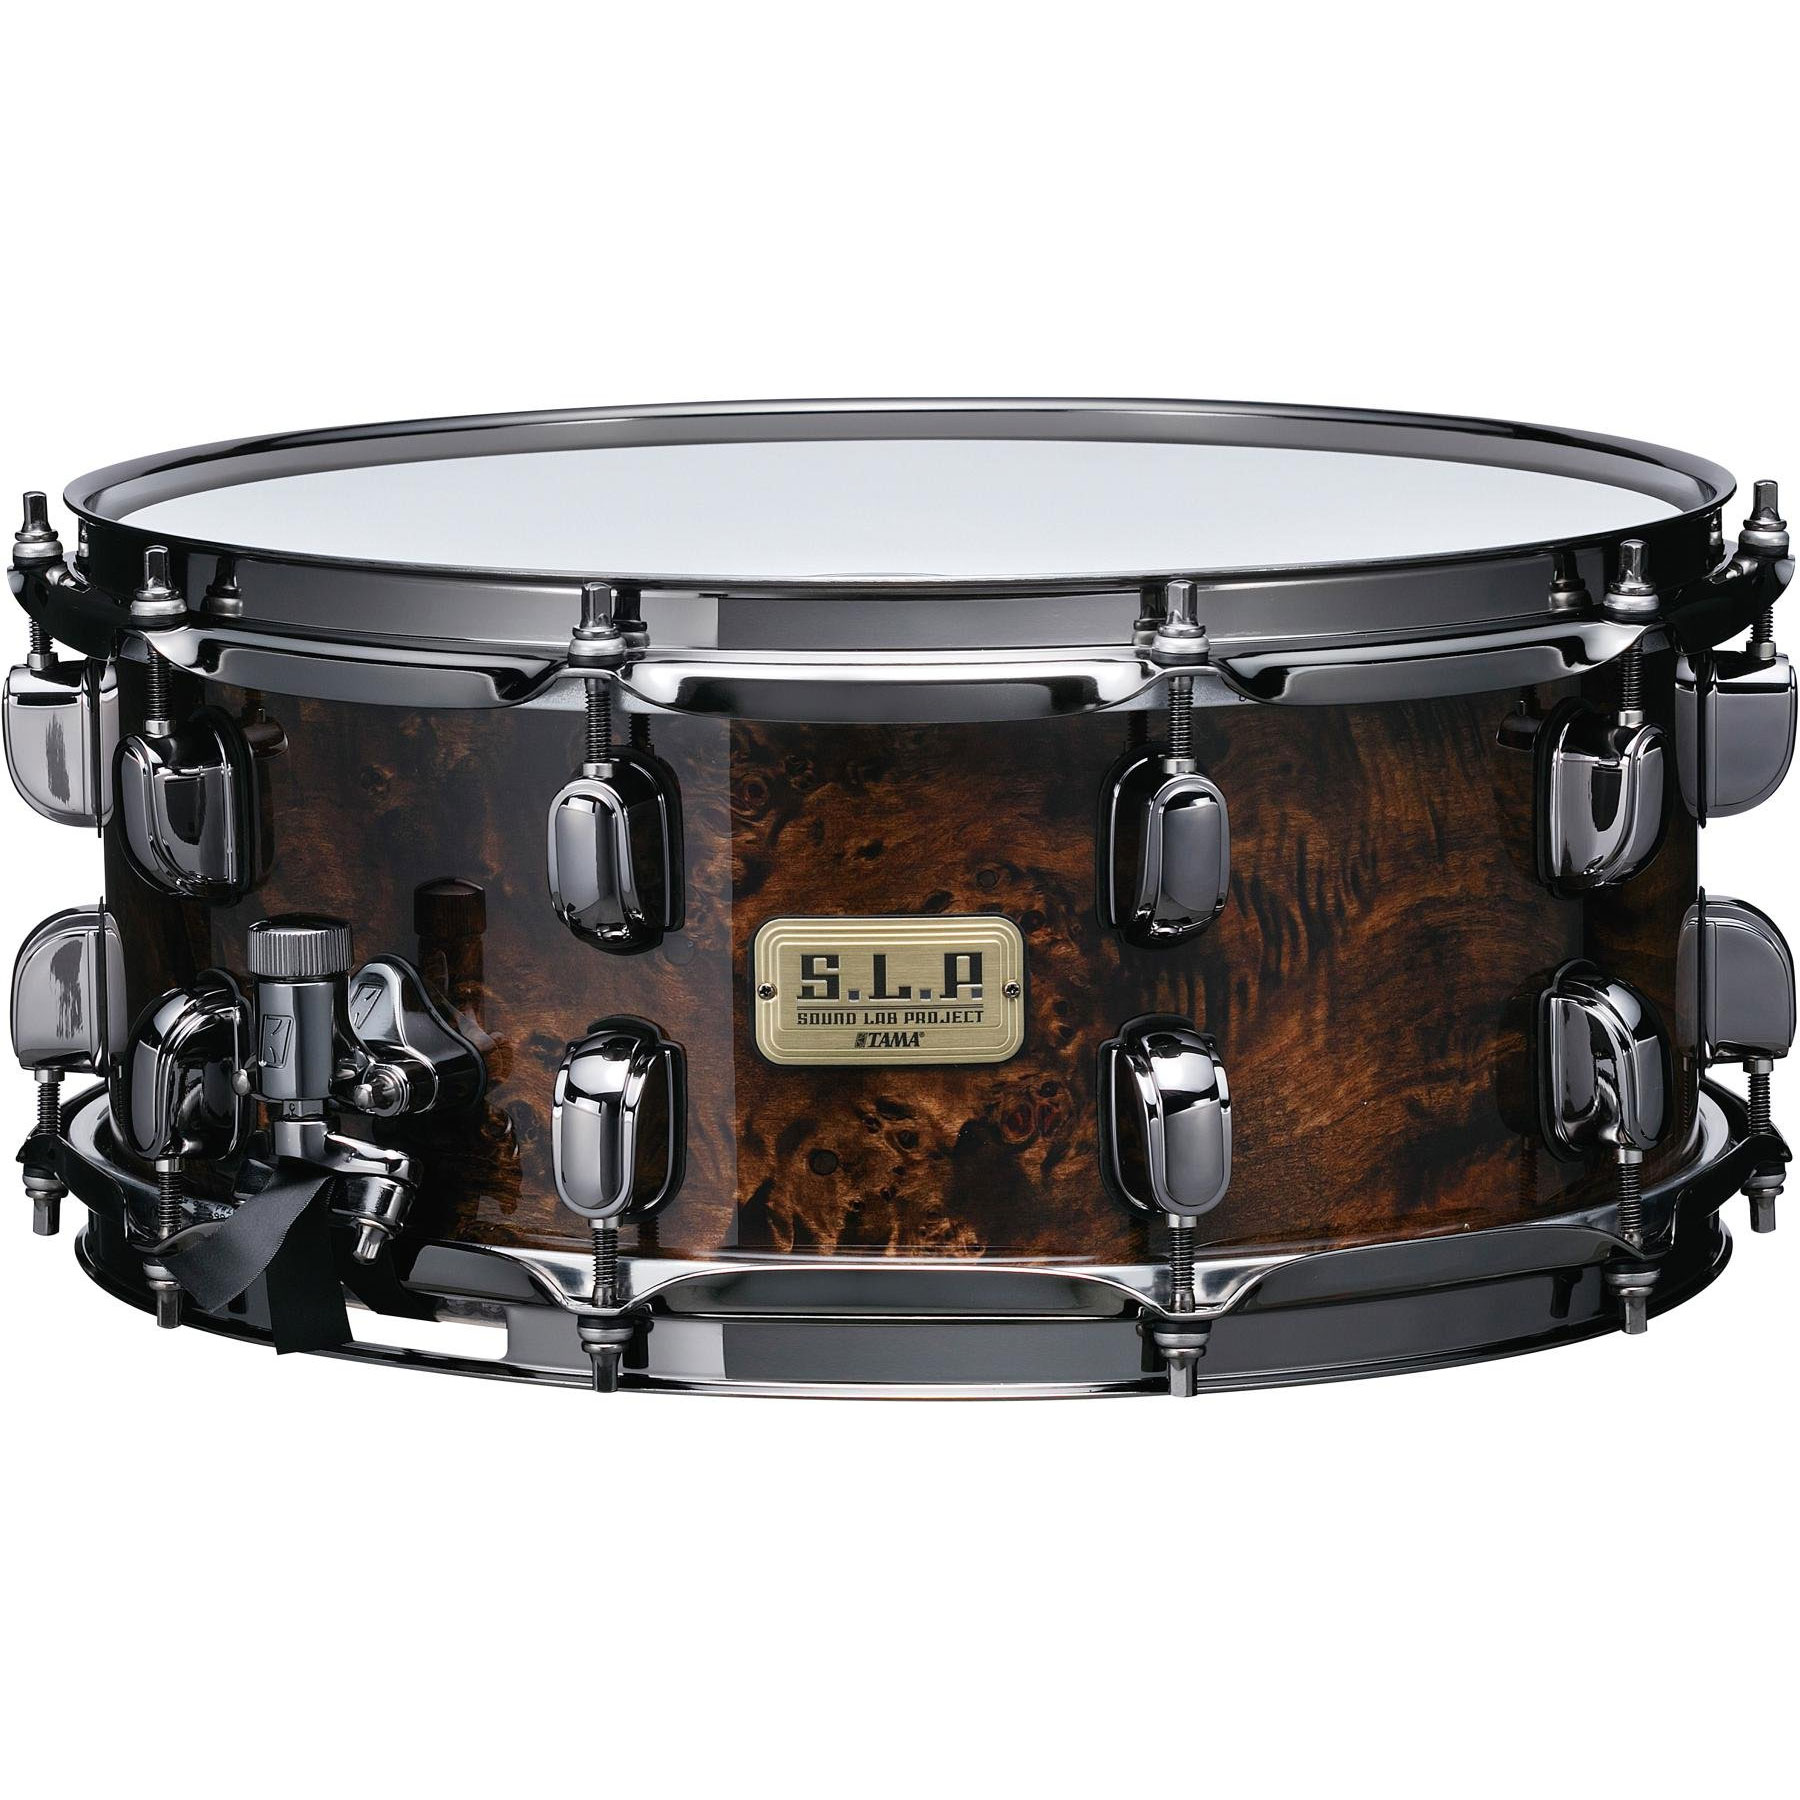 "Tama 6"" x 14"" S.L.P. G-Maple Snare Drum in Kona Mappa Burl"